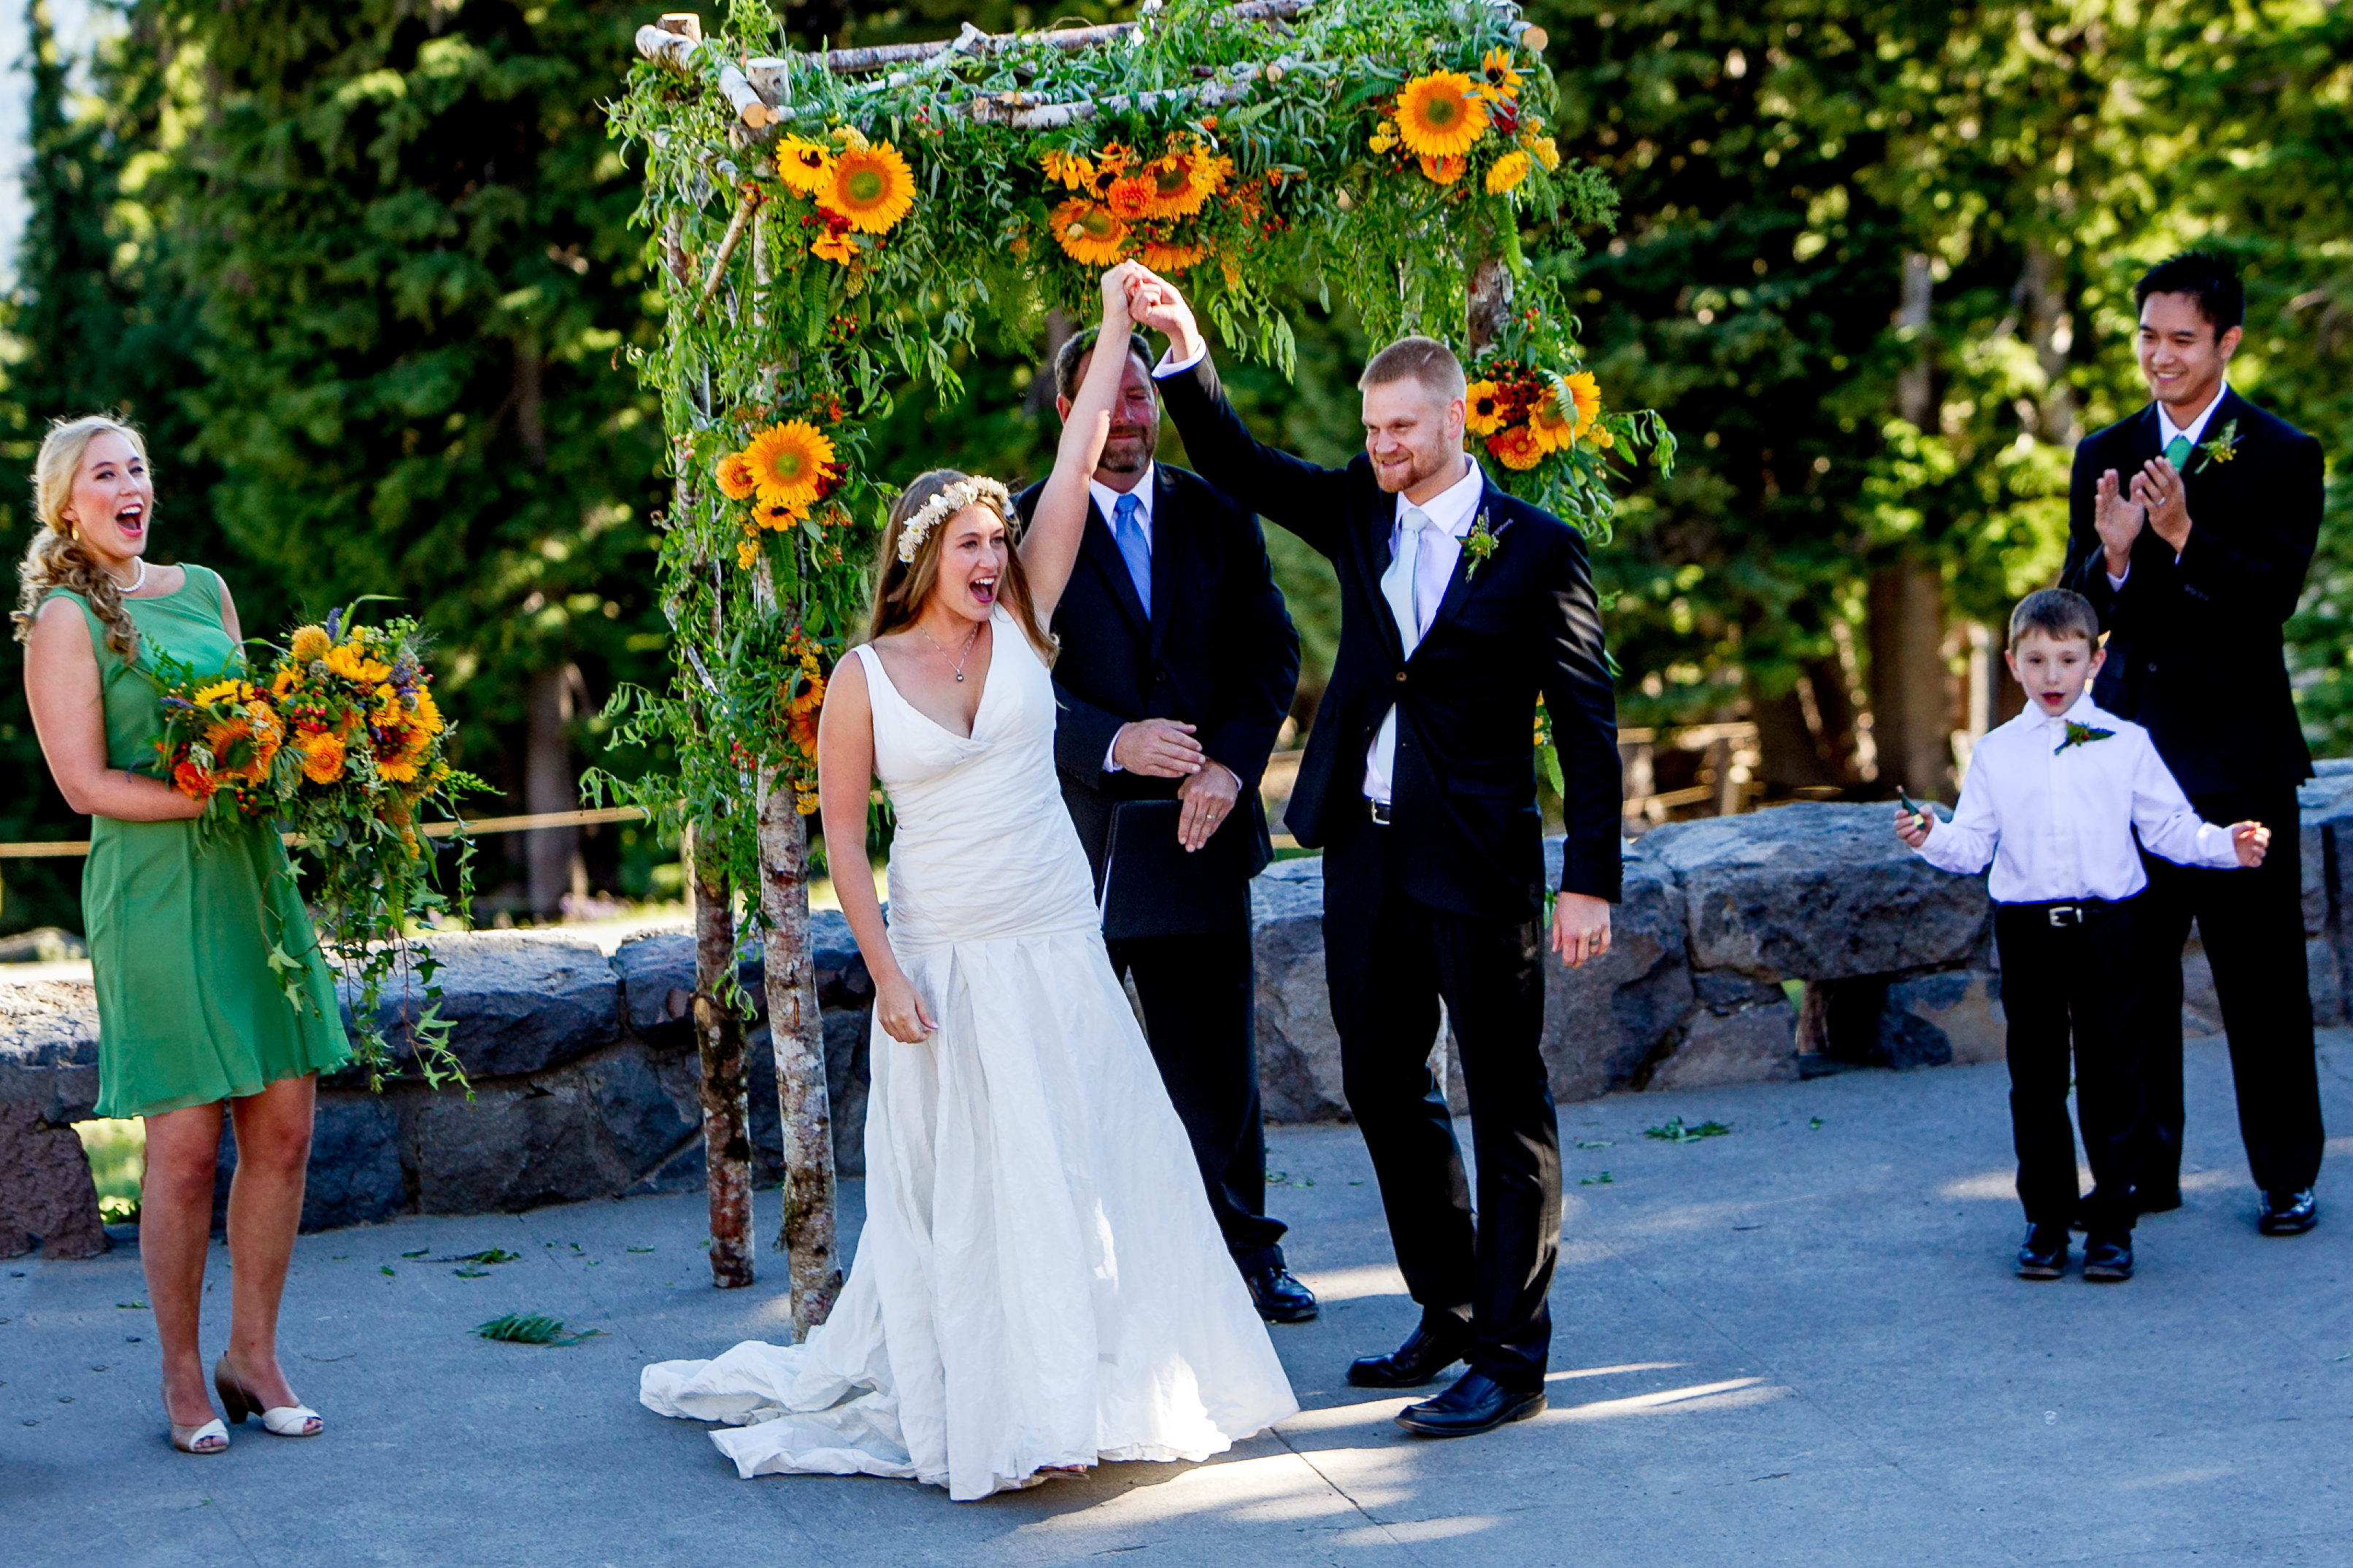 Timberline Lodge wedding ceremony at Amphitheater